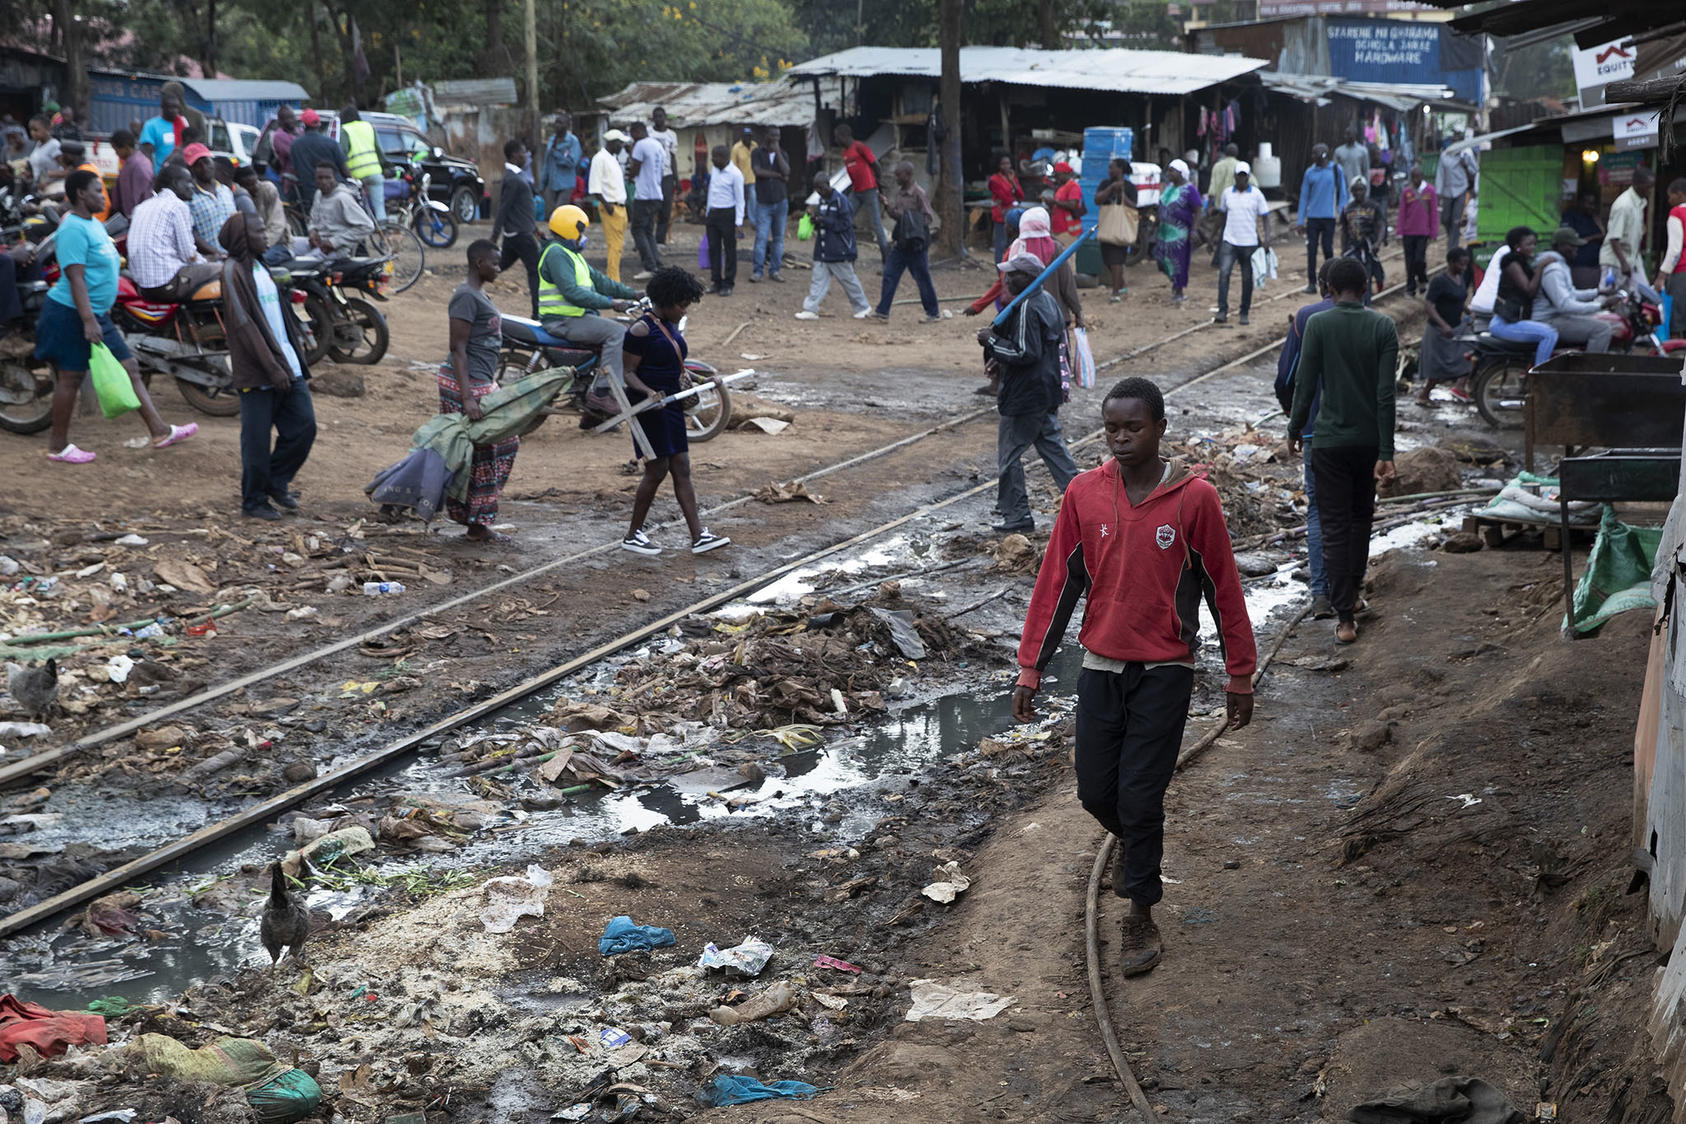 People walk through Kibera, the largest urban slum in Africa, in Nairobi, Kenya, April 7, 2020. (Tyler Hicks/The New York Times)